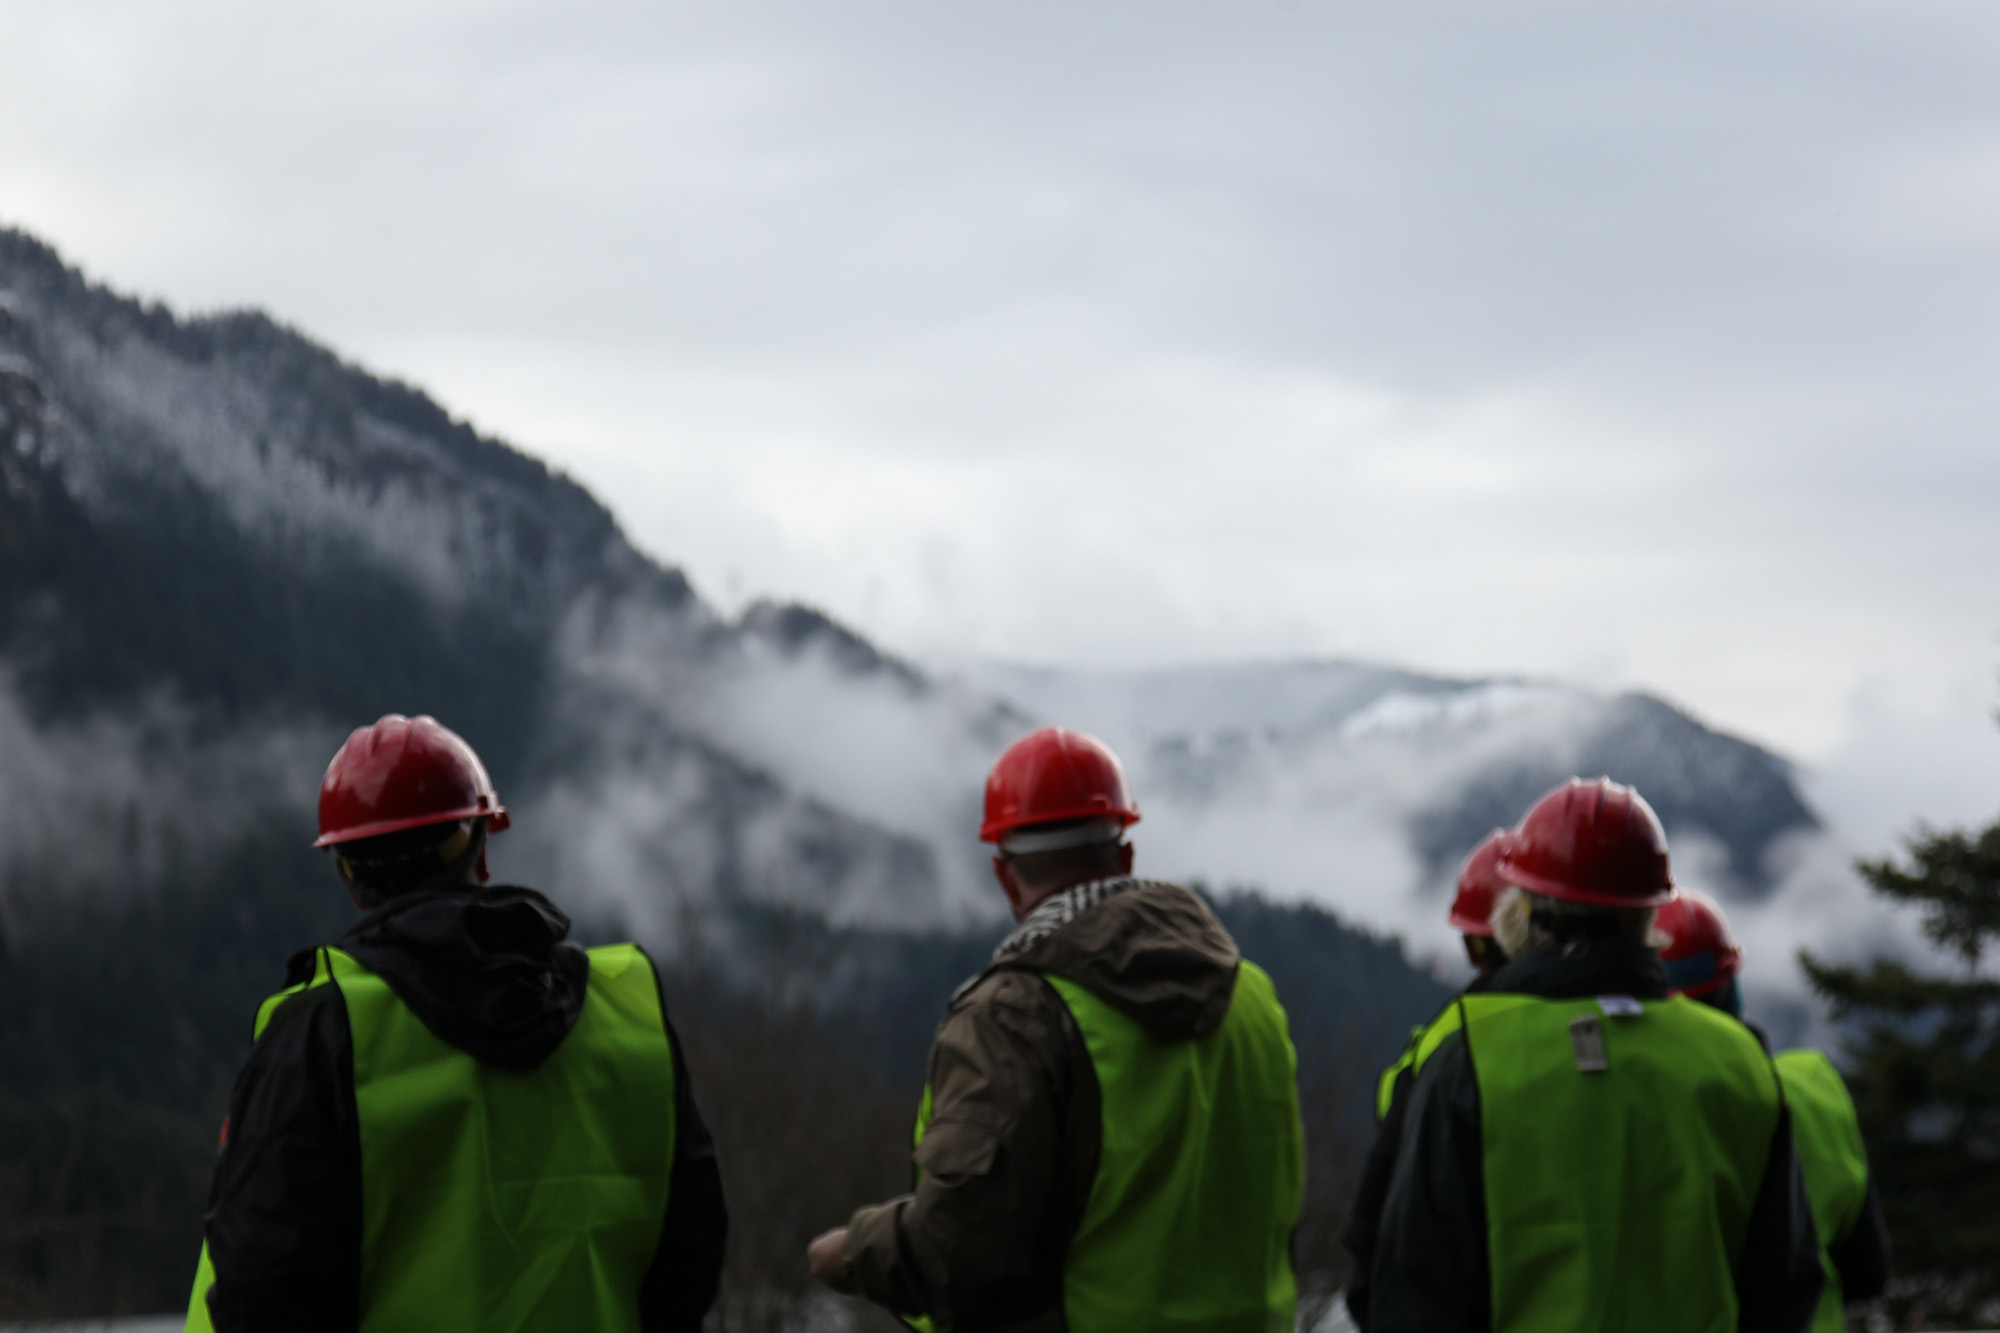 Employees of a GE locomotive plant in Erie, Pa., visit the Columbia River Gorge to film advertising.